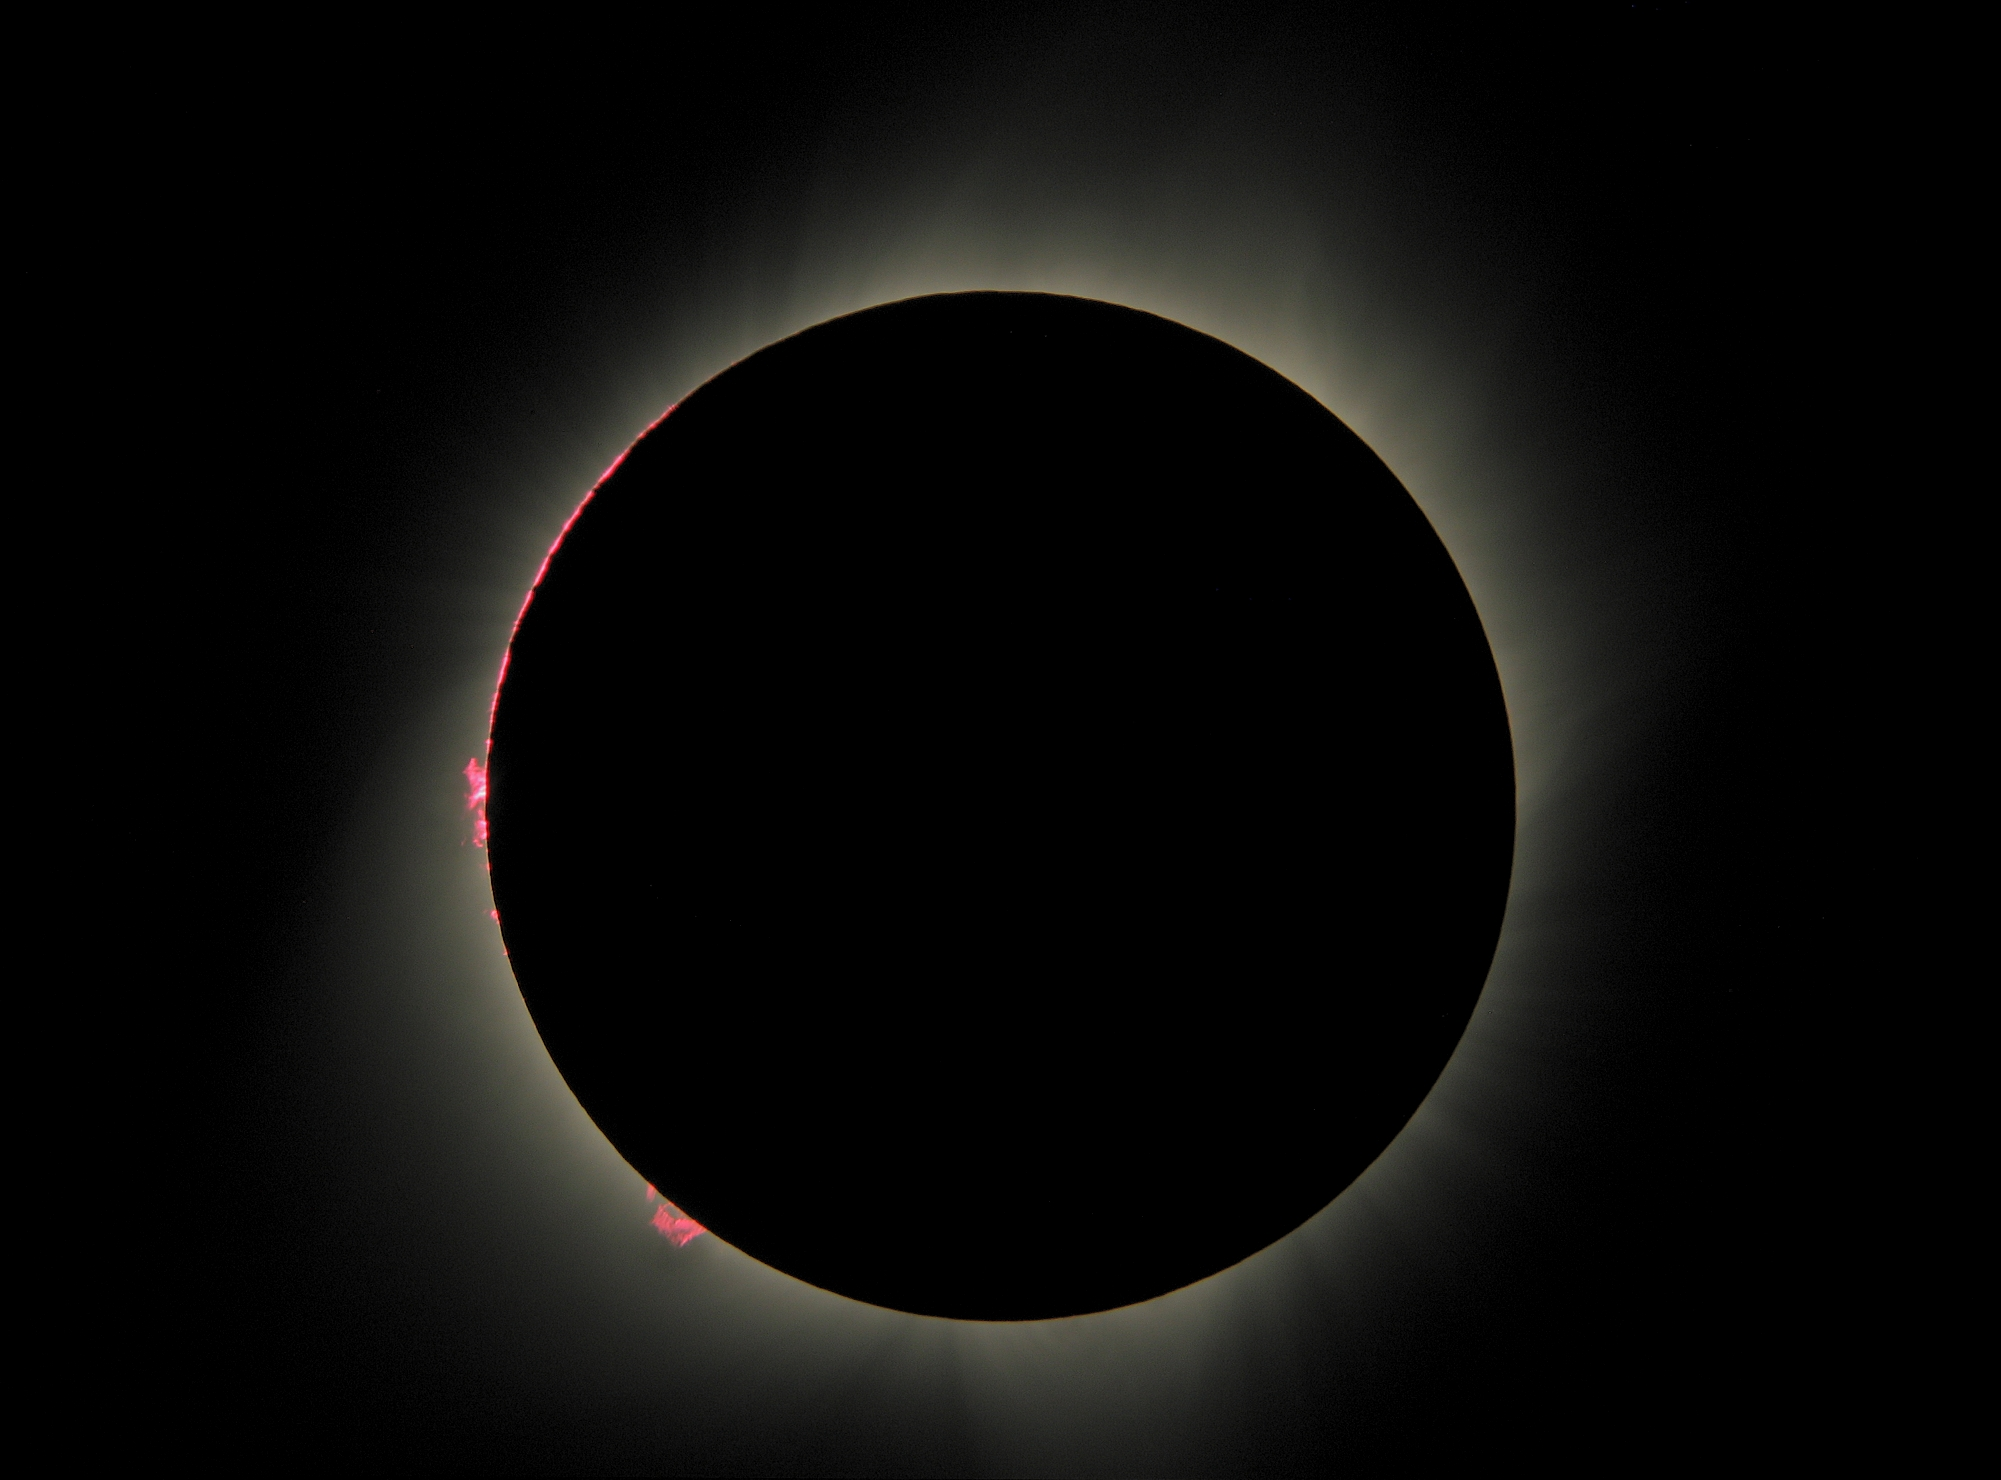 eclipse210817-17h21m57-306mmf3mf3b.jpg